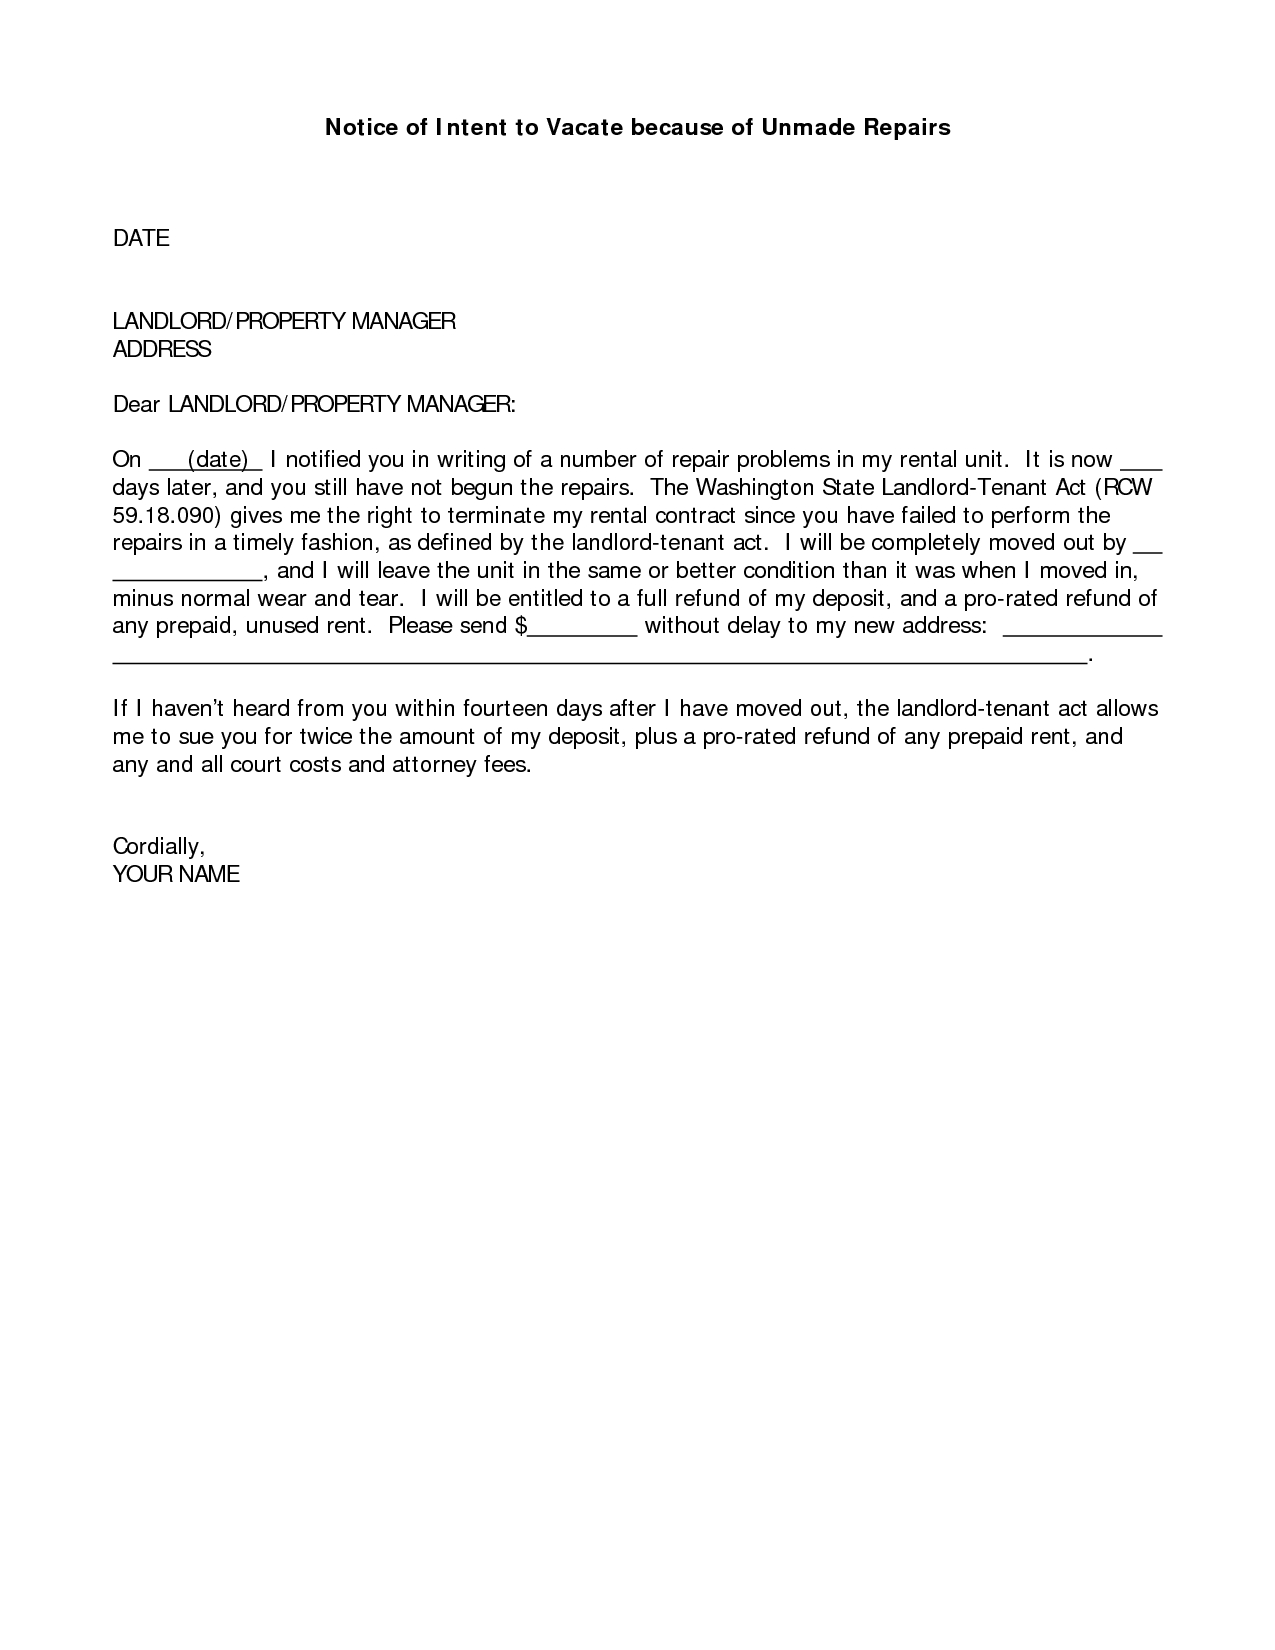 Notice Of Intent to Vacate Letter Template - Best S Vacating Apartment Letterndlord Notice to Tenant